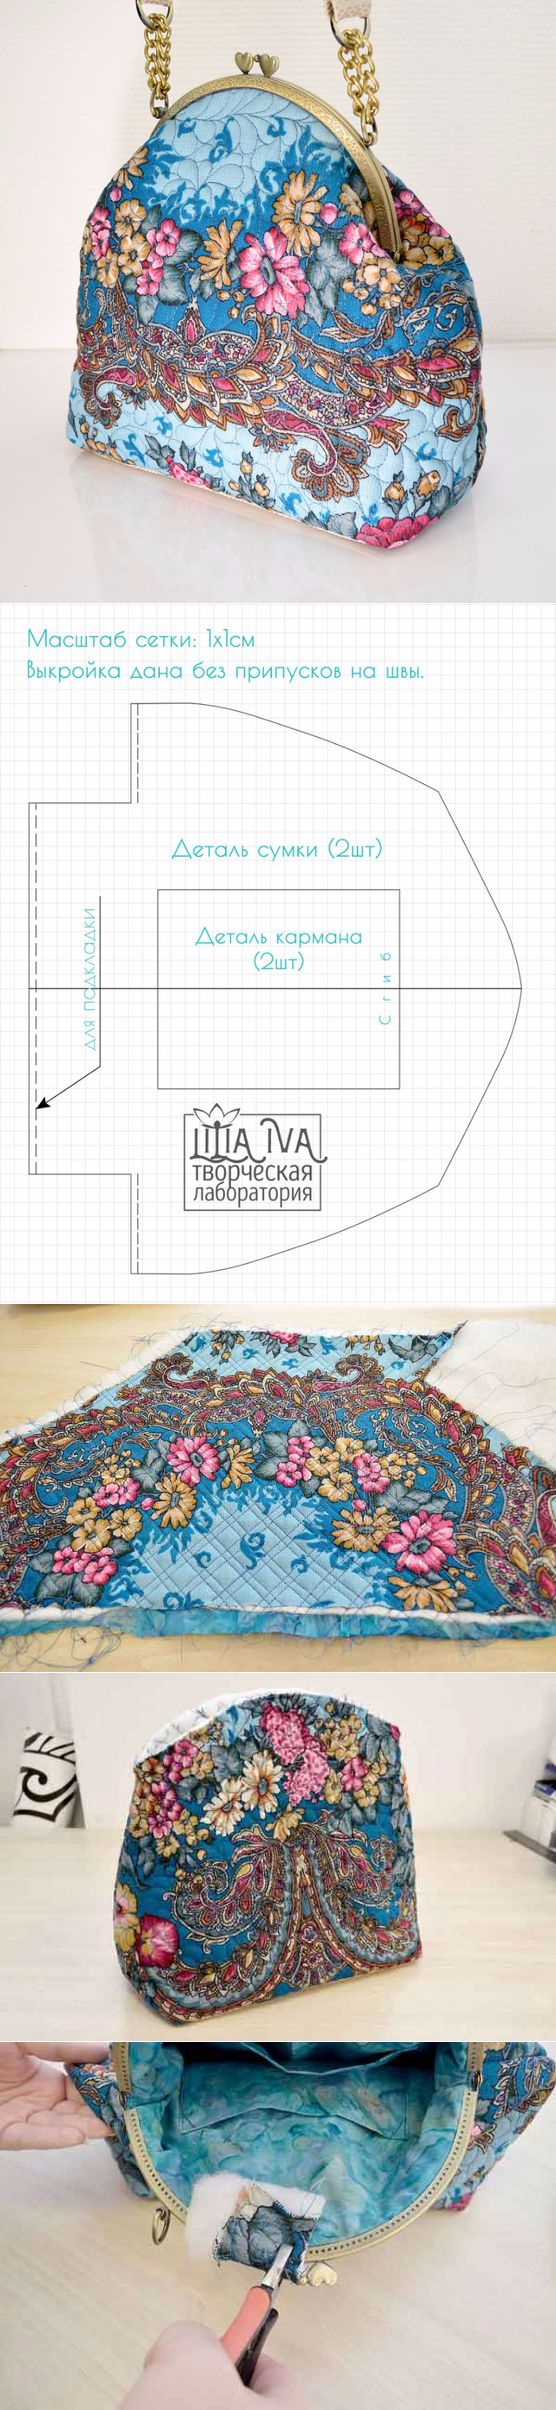 We sew a bag in the Russian style